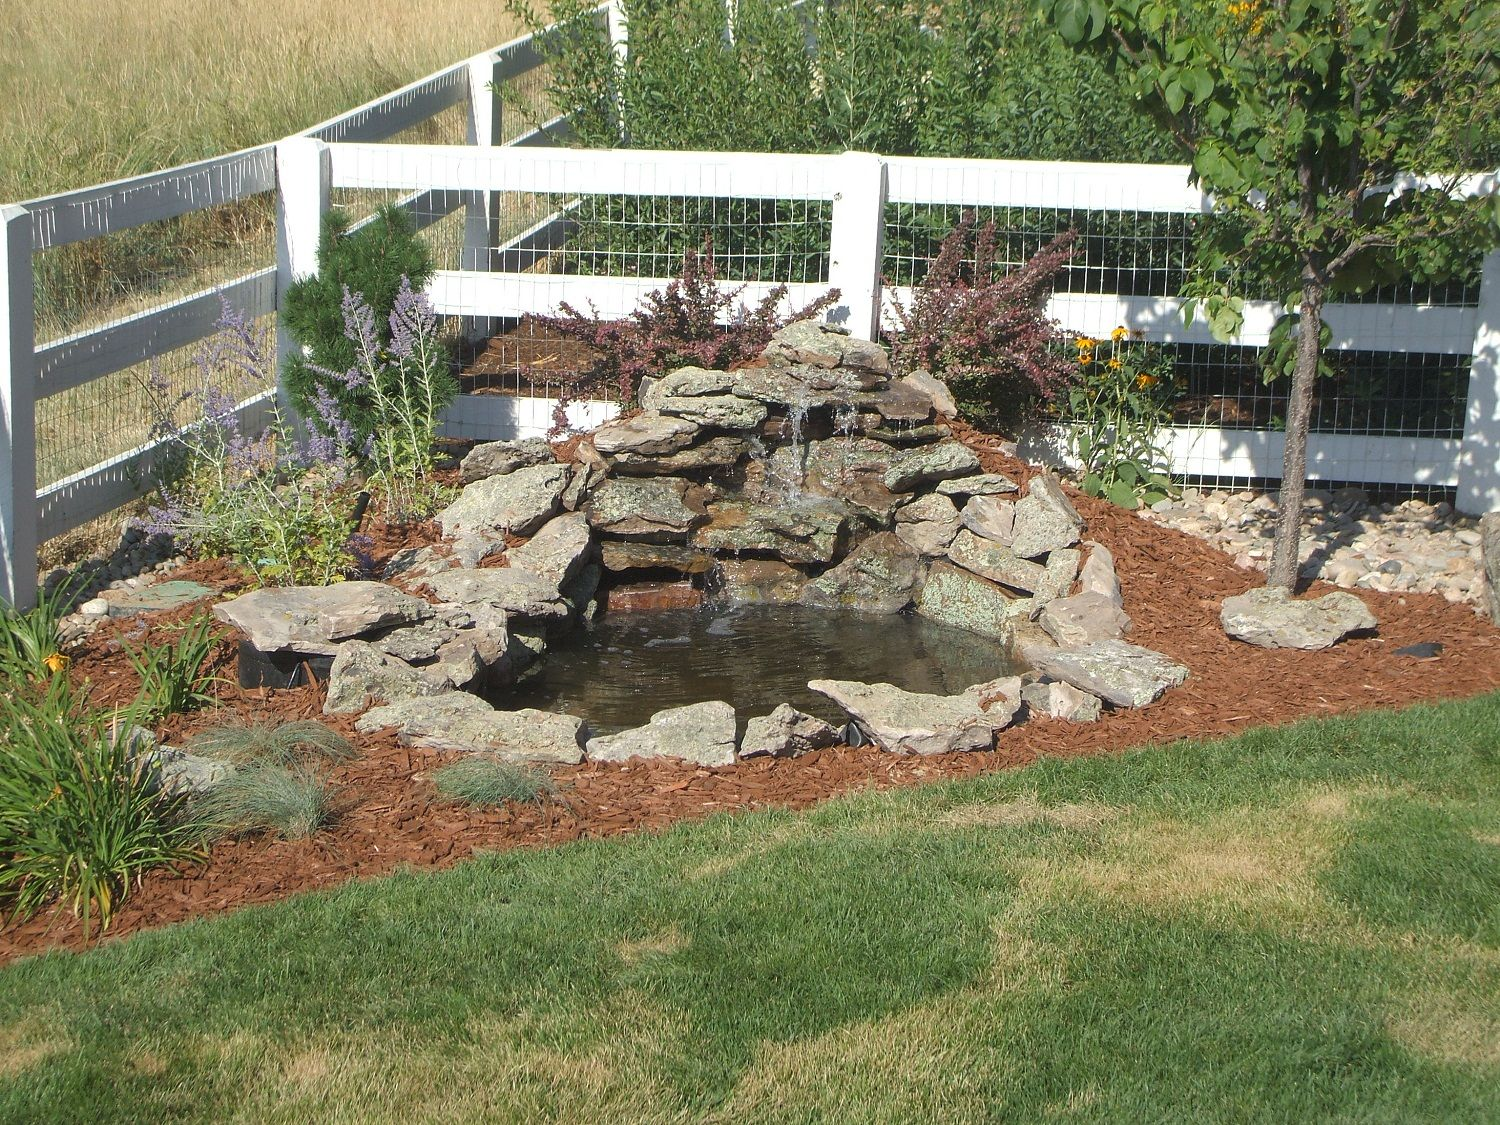 Garden and patio small diy ponds with waterfall and stone for Small pond ideas